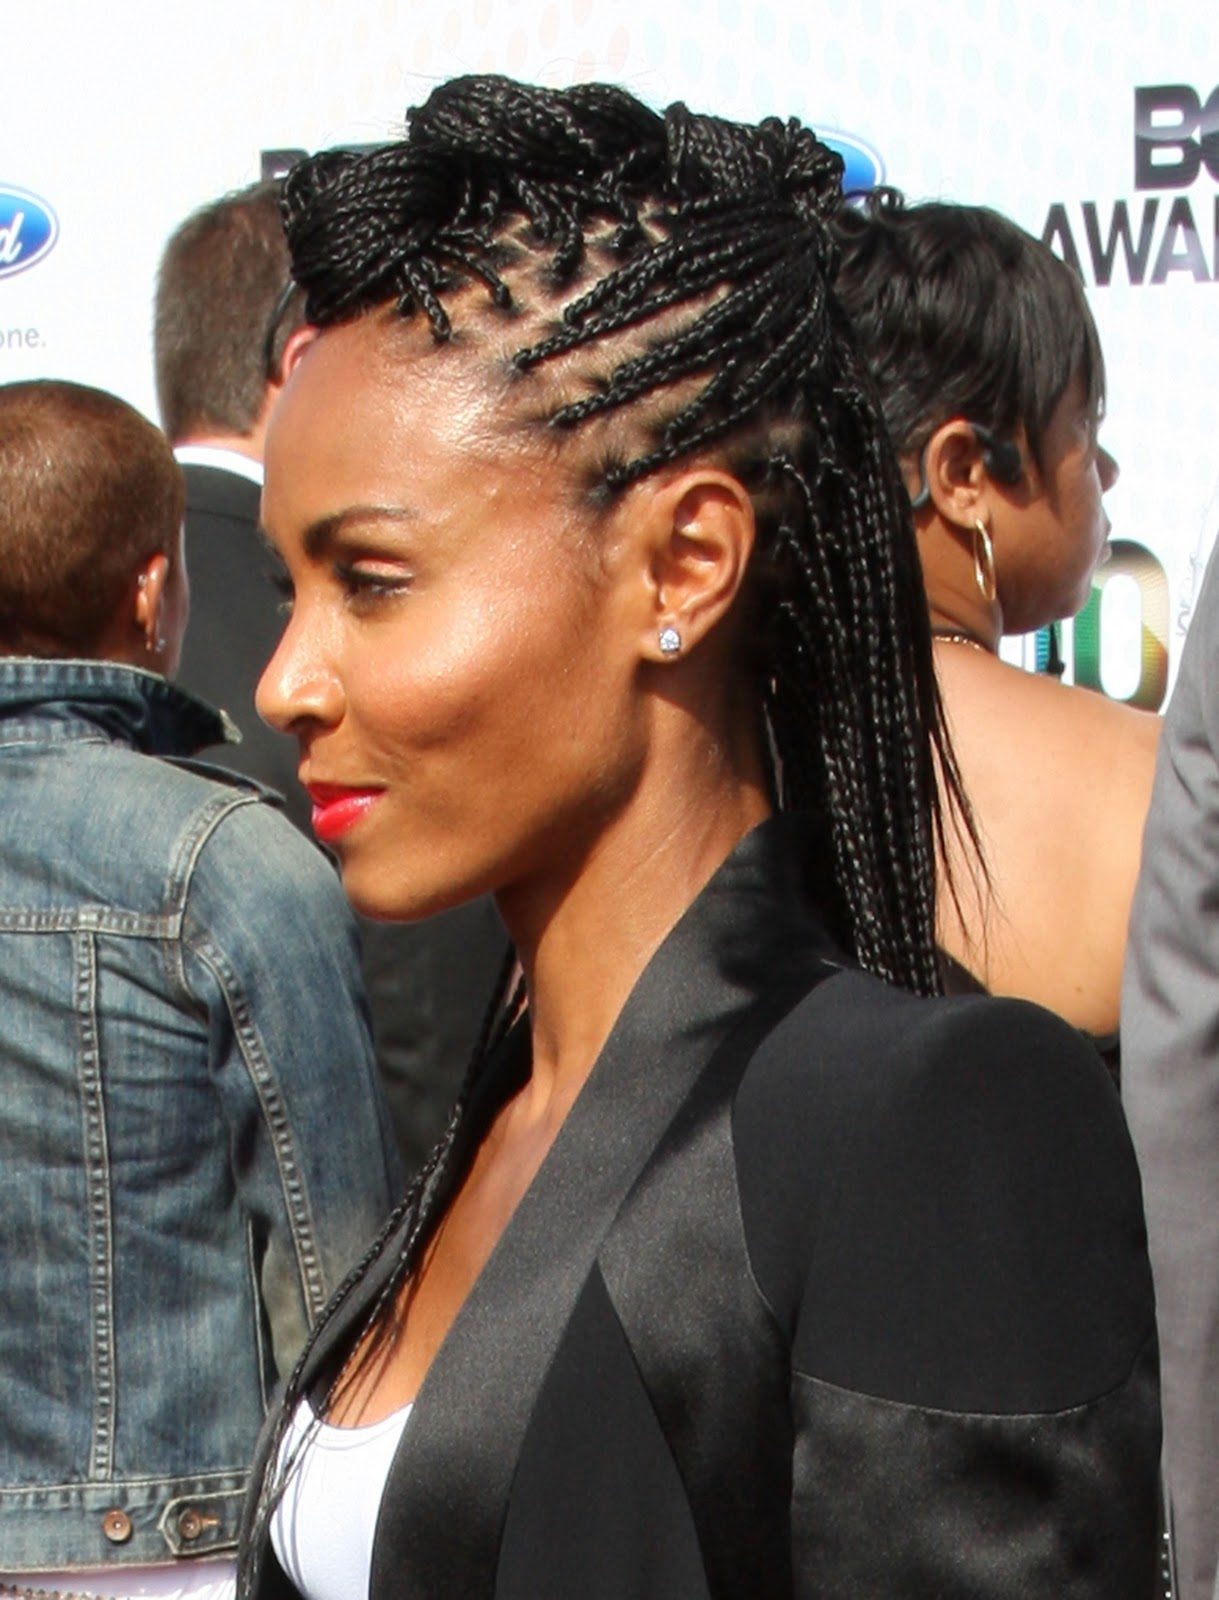 GLAM OR SHAM Willow And Jada Pinkett Smiths Braided Mohawksor